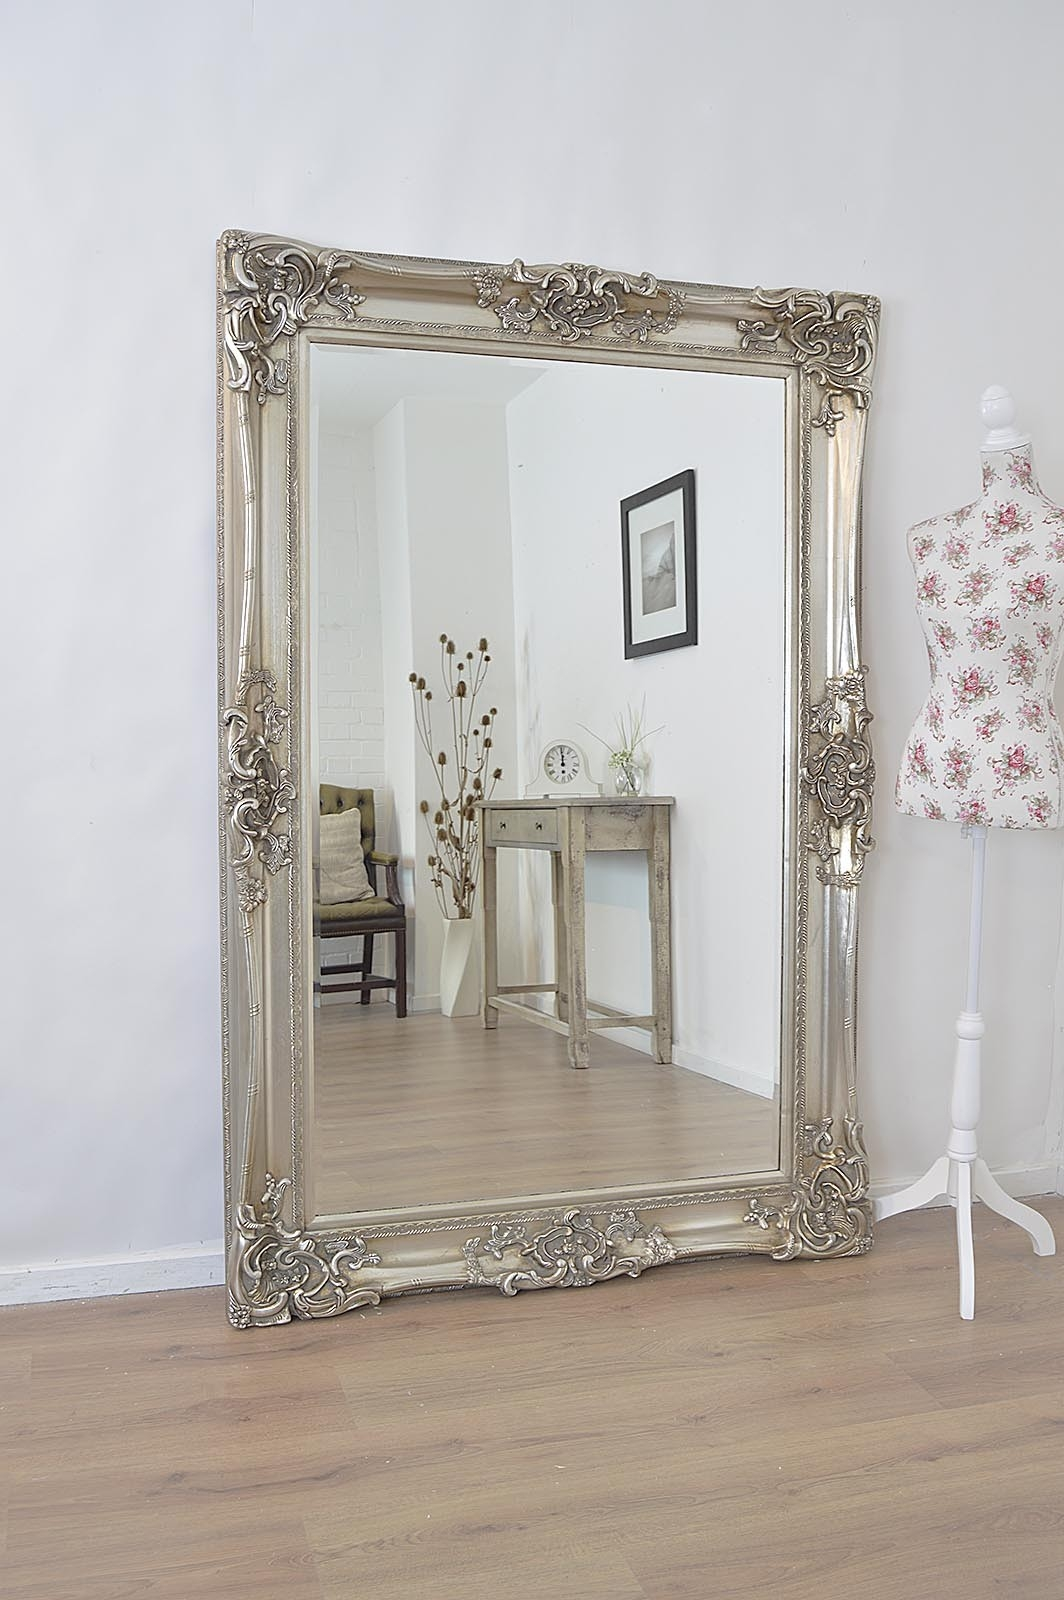 Fine Decoration Huge Wall Mirror Cozy Design Silver Ornate Huge Regarding Ornate Large Mirror (Image 5 of 15)